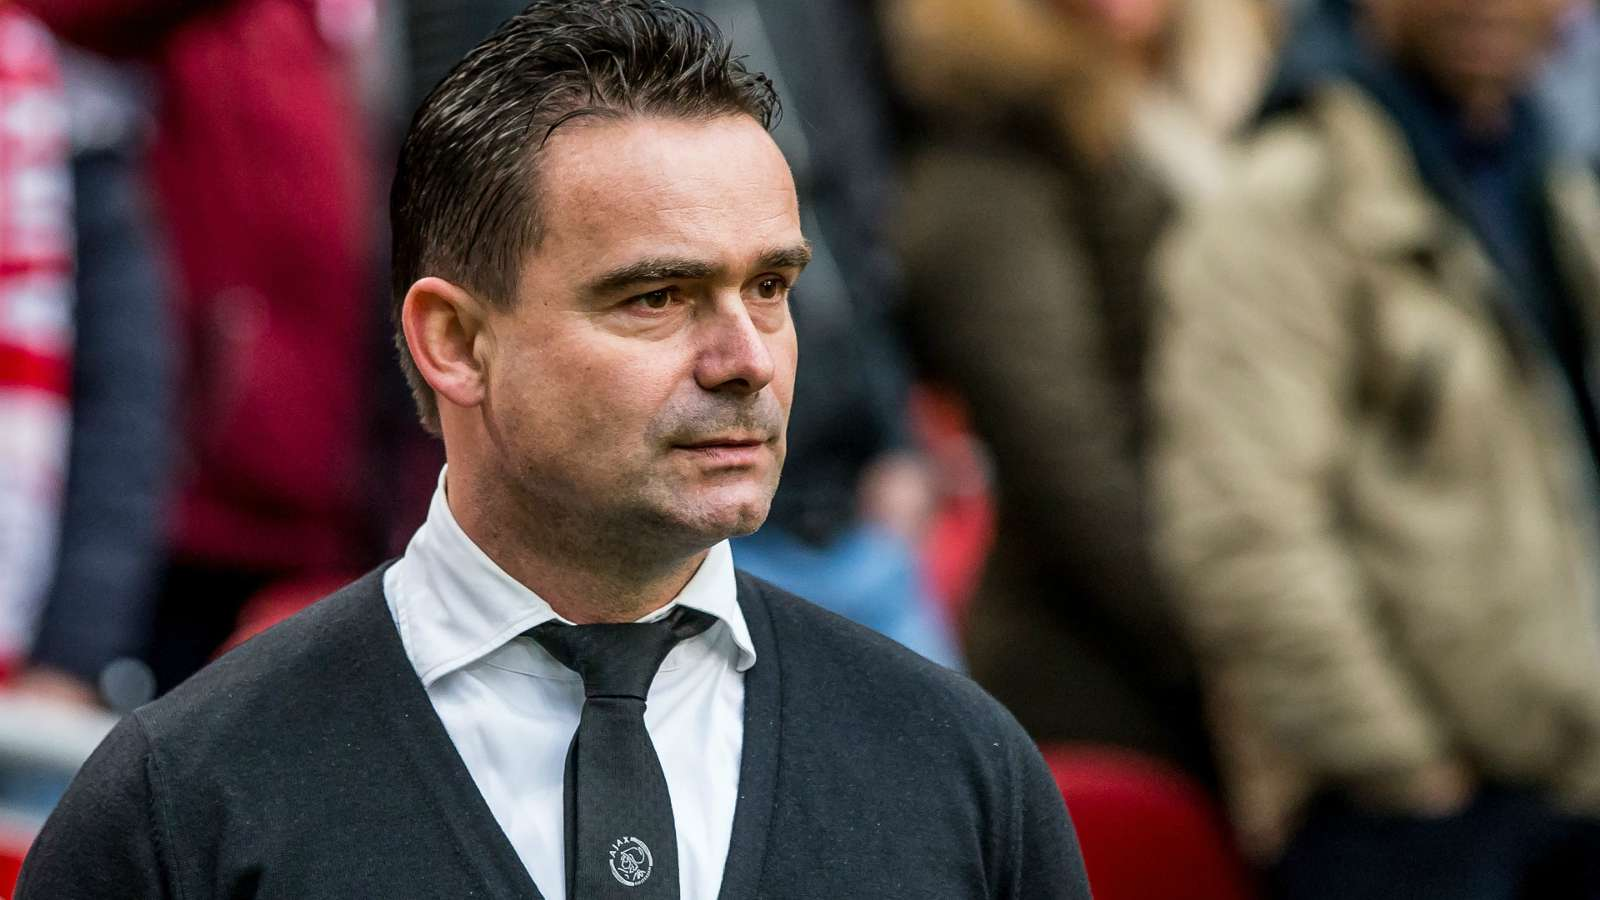 'They are like Trump!' - Ajax director Overmars slams Dutch FA over coronavirus plan - Bóng Đá